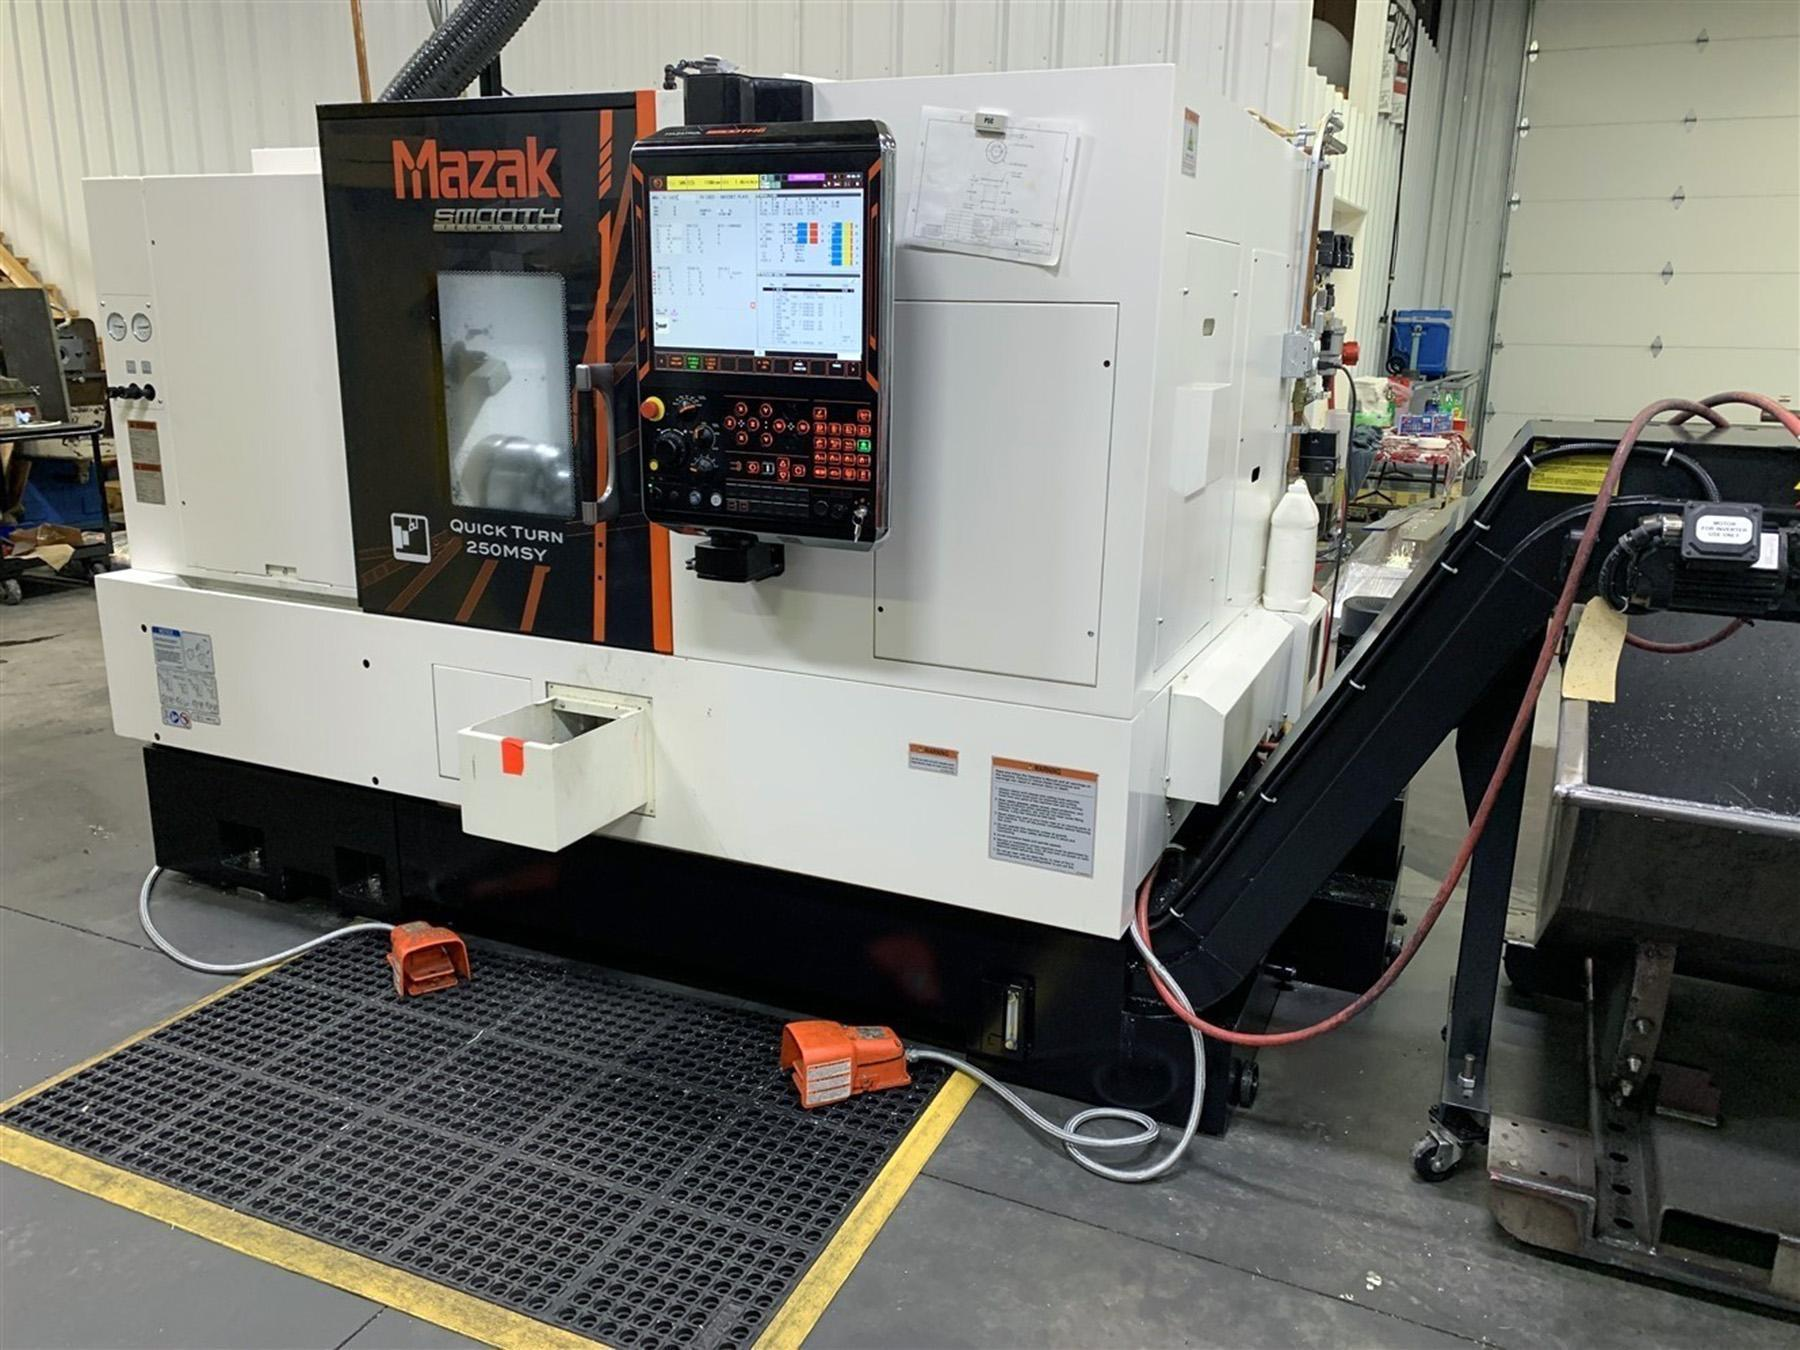 USED, MAZAK QUICK TURN 250 MSY CNC TURNING CENTER WITH SUB SPINDLE AND Y AXIS